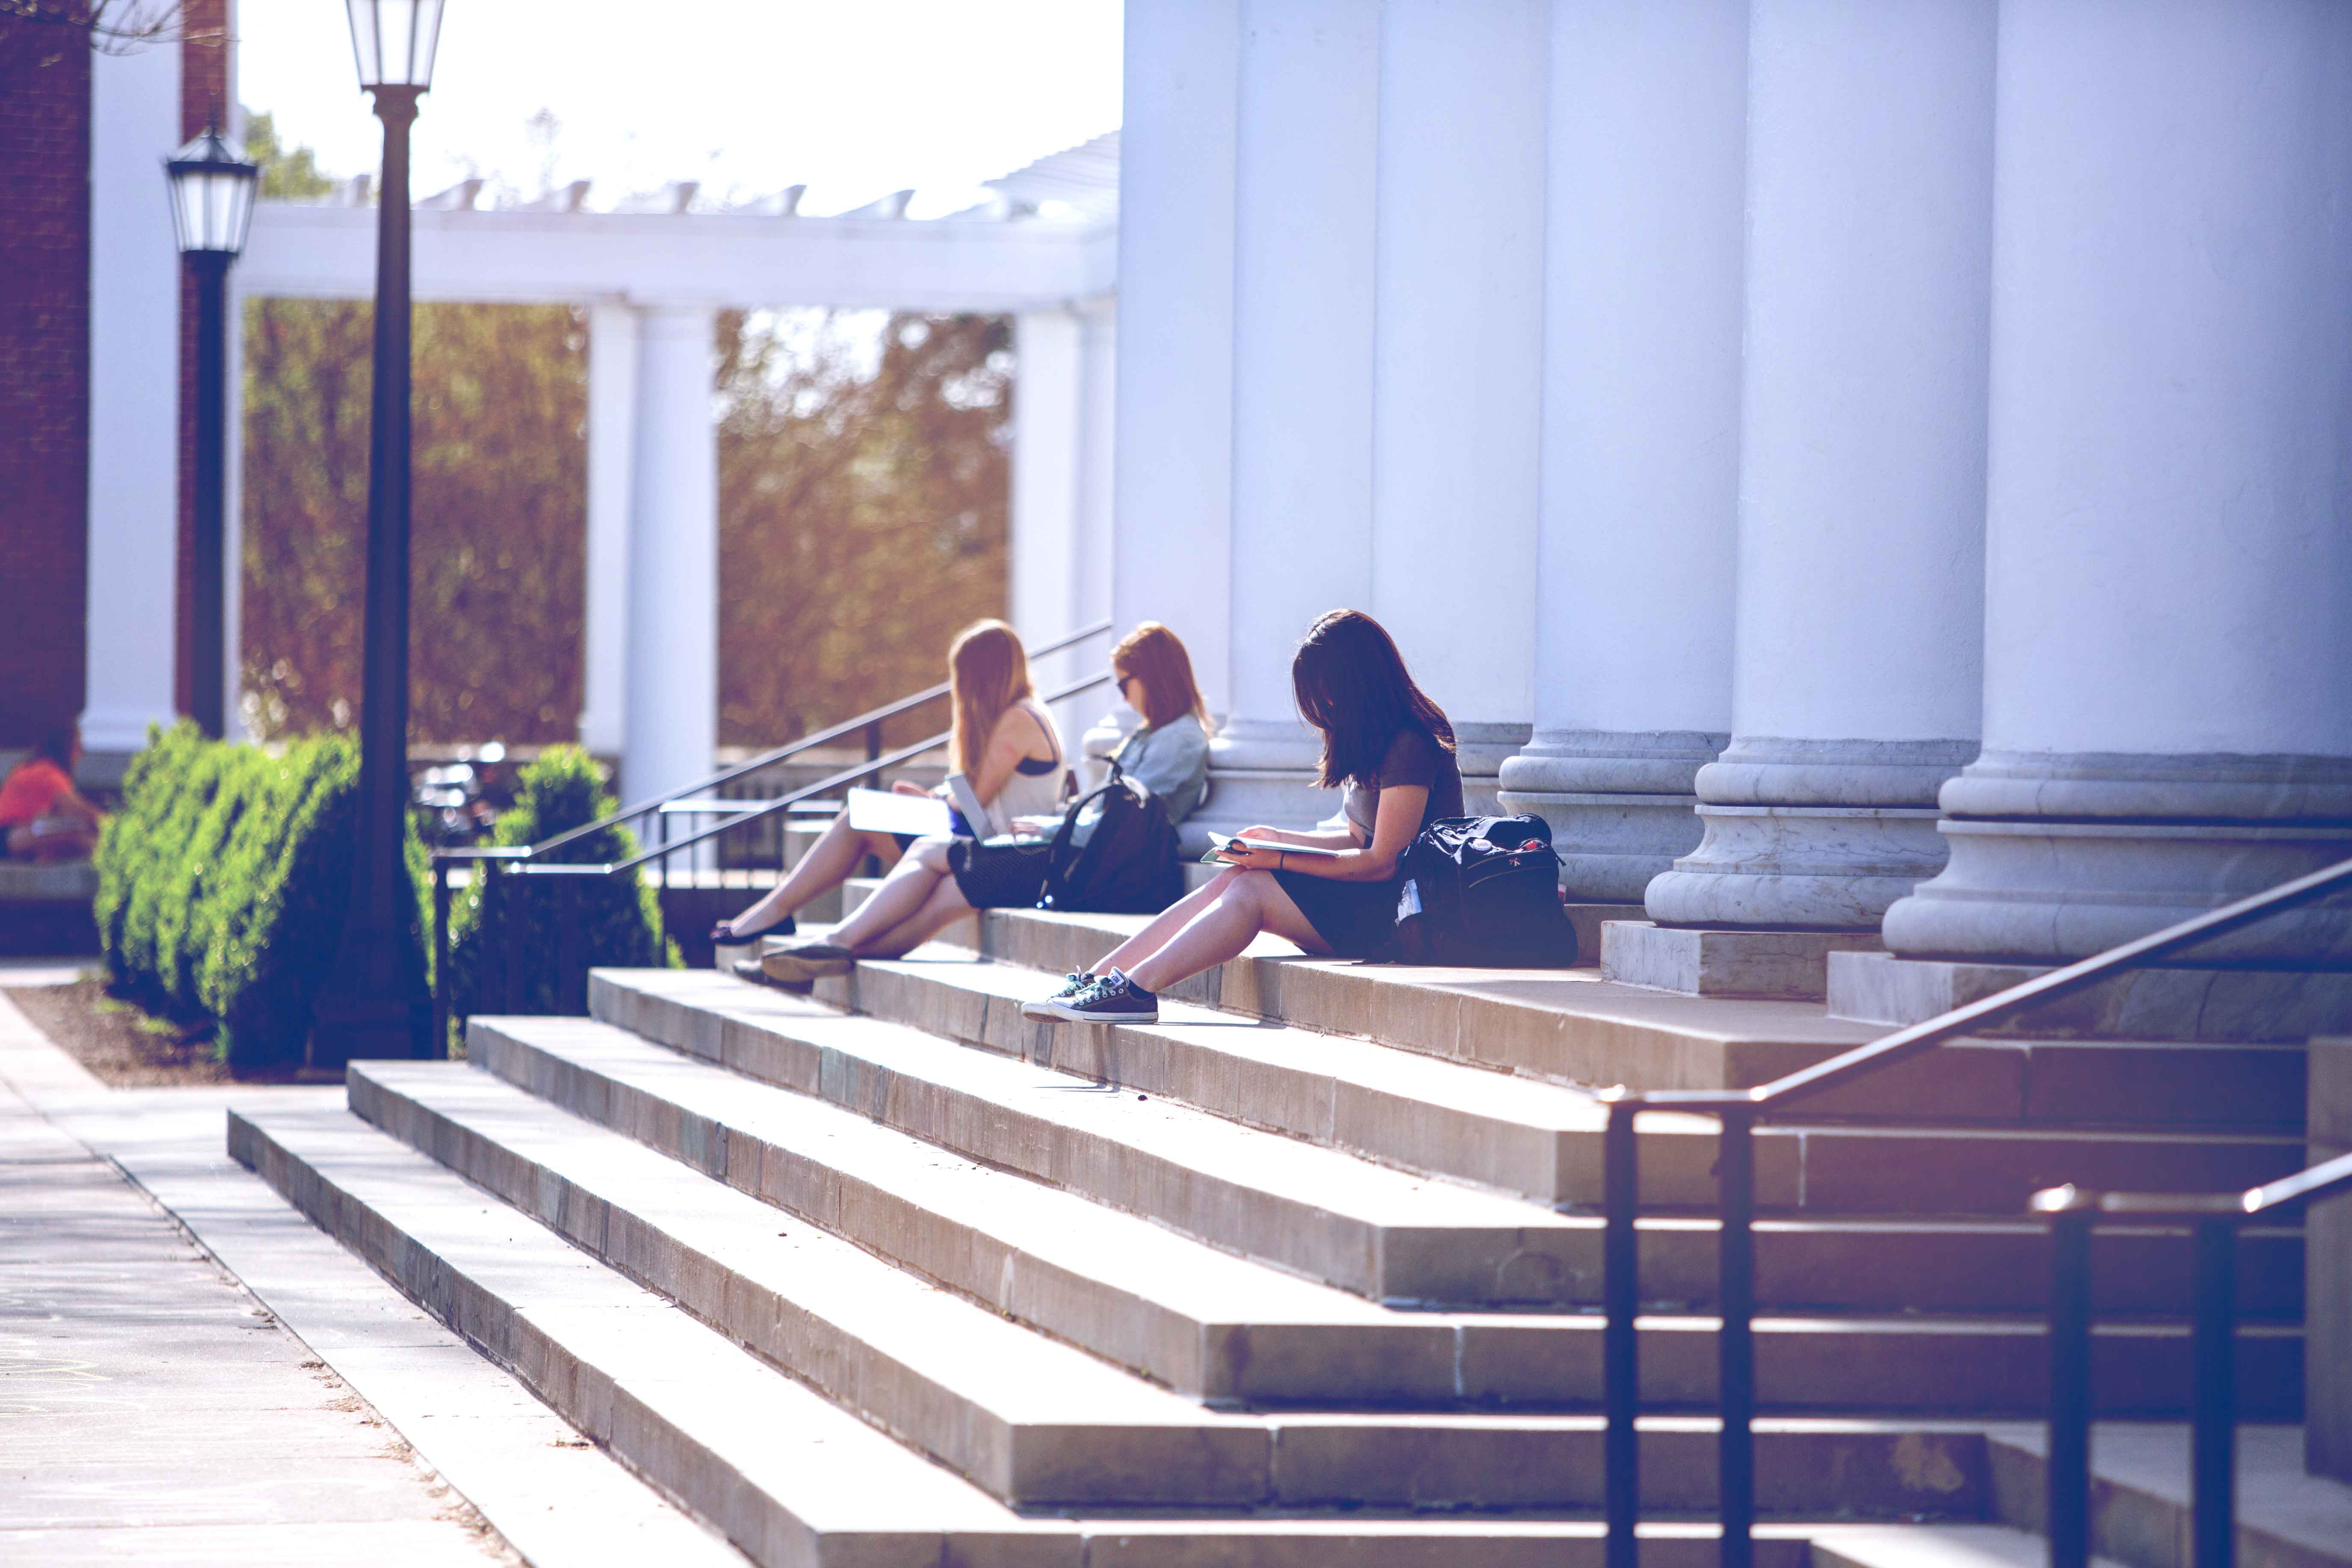 """Not only did UVA come in at No. 2 among public universities on Kiplinger's """"Best College Value"""" rankings, but it also boasted the top four-year graduation rate of any other public institution on the list at 87 percent."""